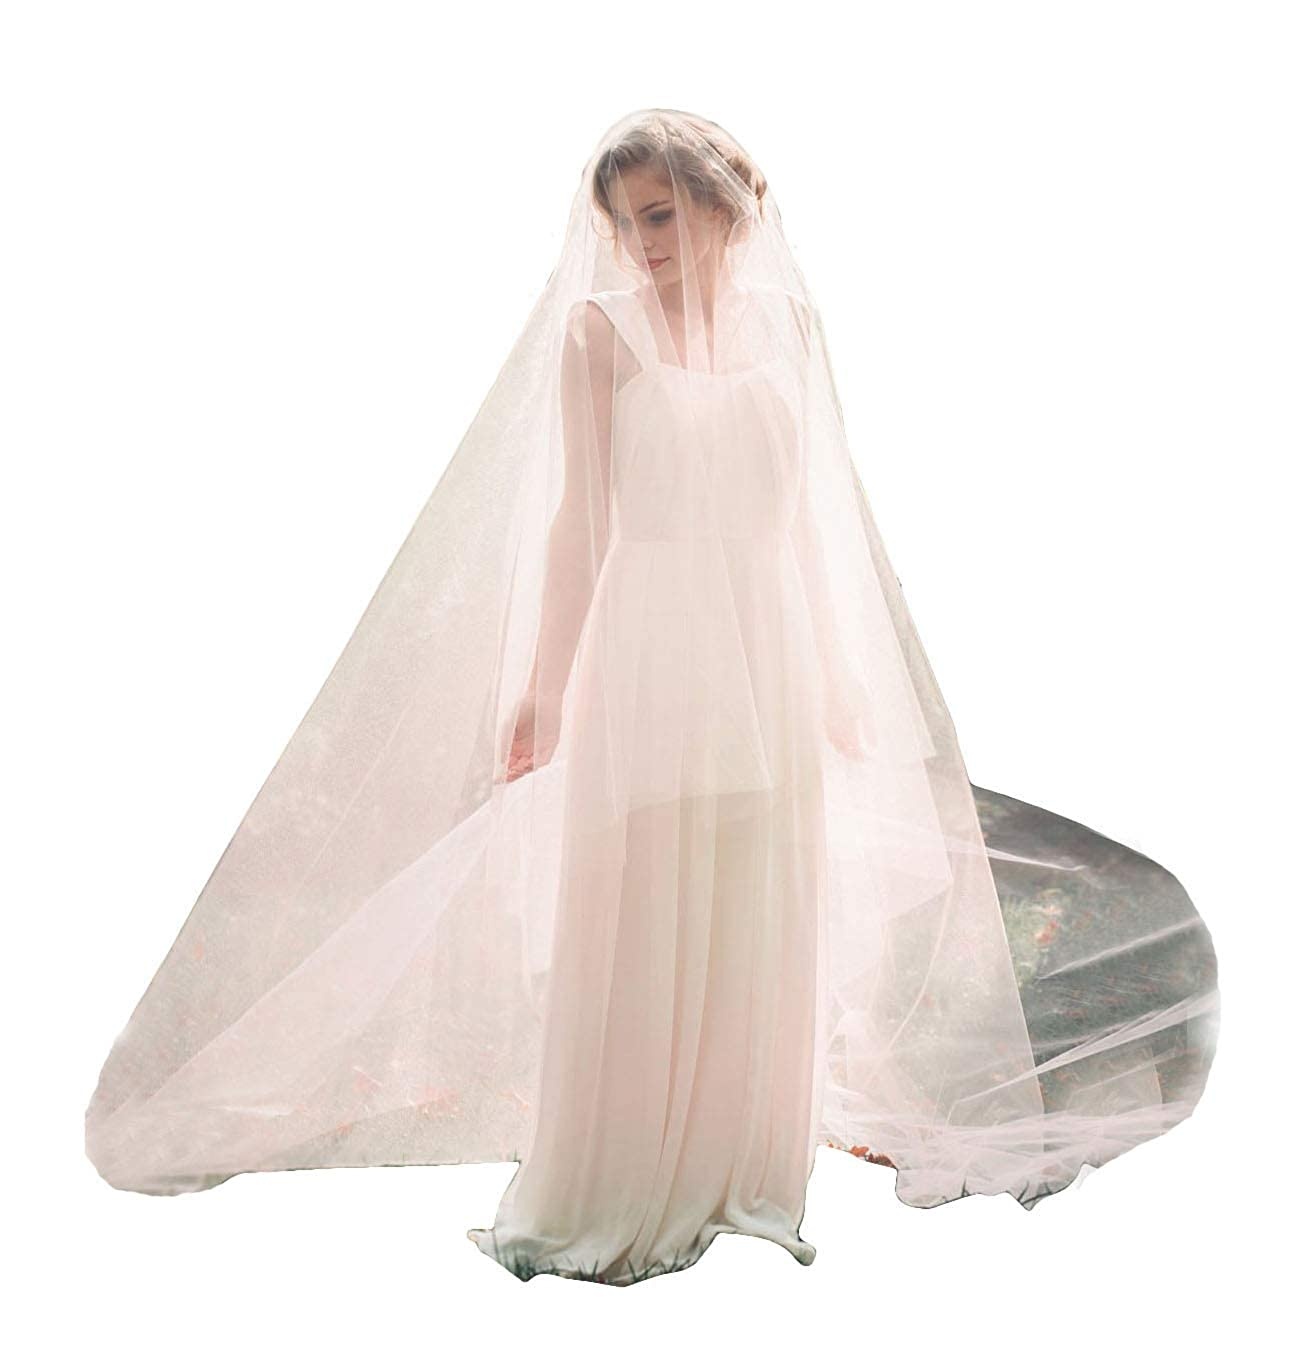 Fenghuavip Blusher Cathedral Wedding Veil 2 Tier Circle Cut Edge Drop Veil with Comb